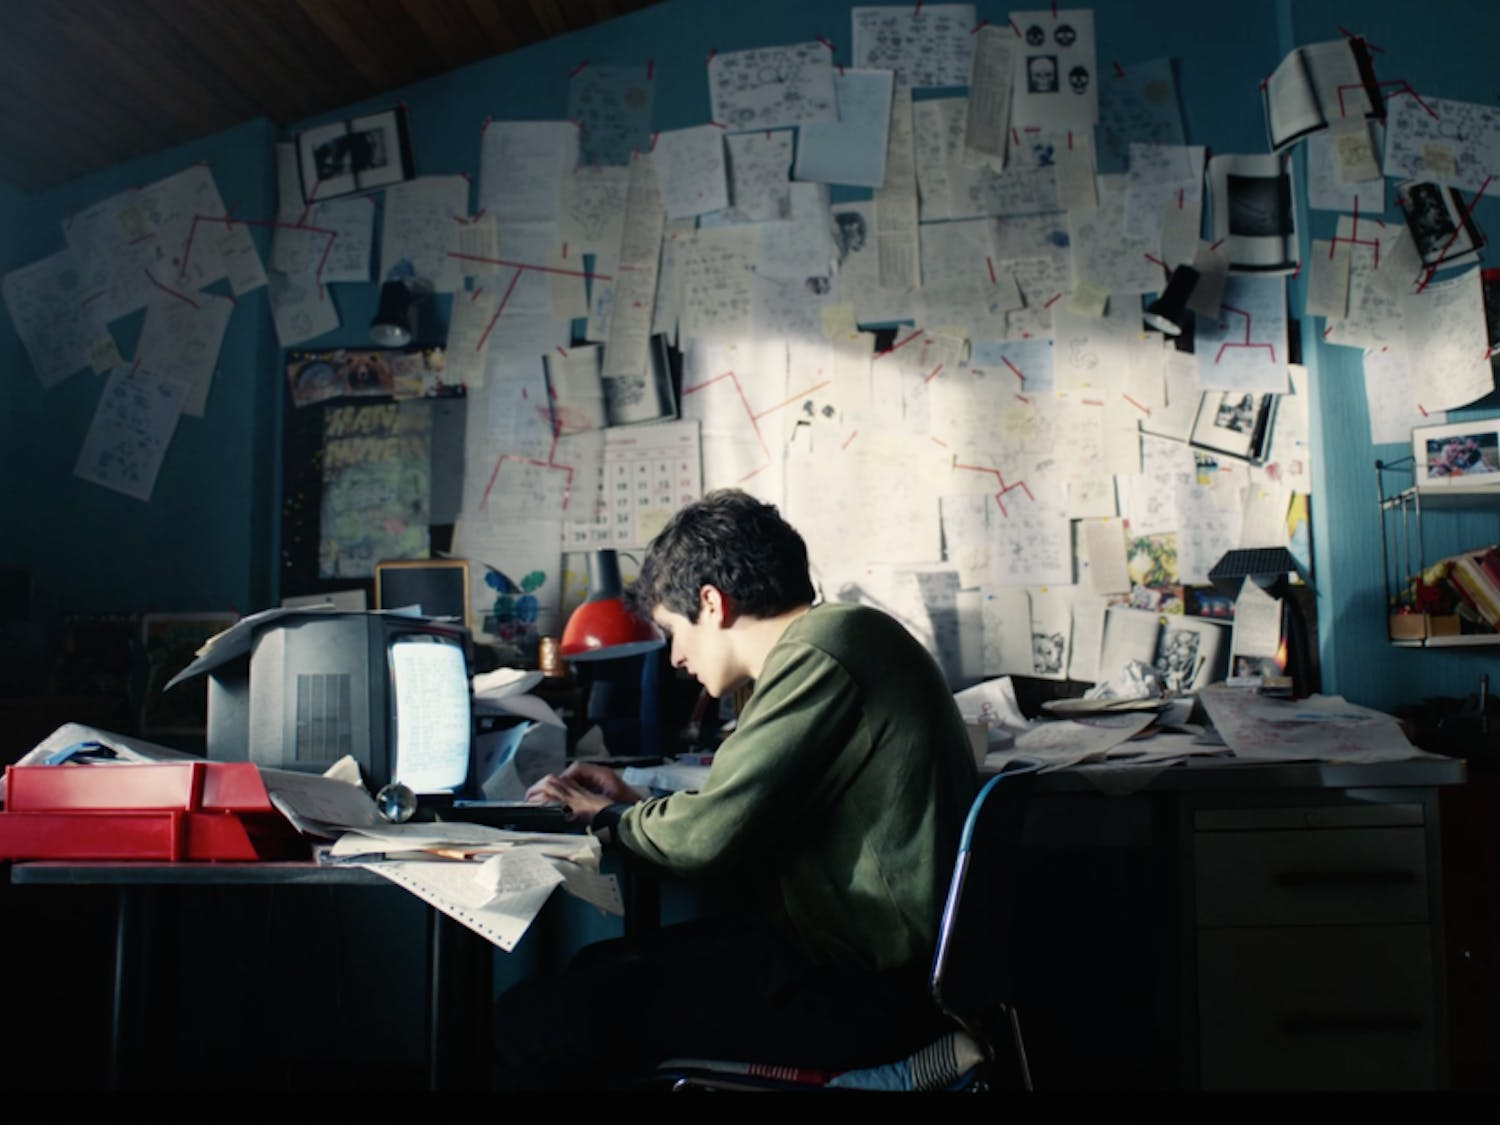 """Black Mirror: Bandersnatch"" premiered on Netflix Dec. 28."